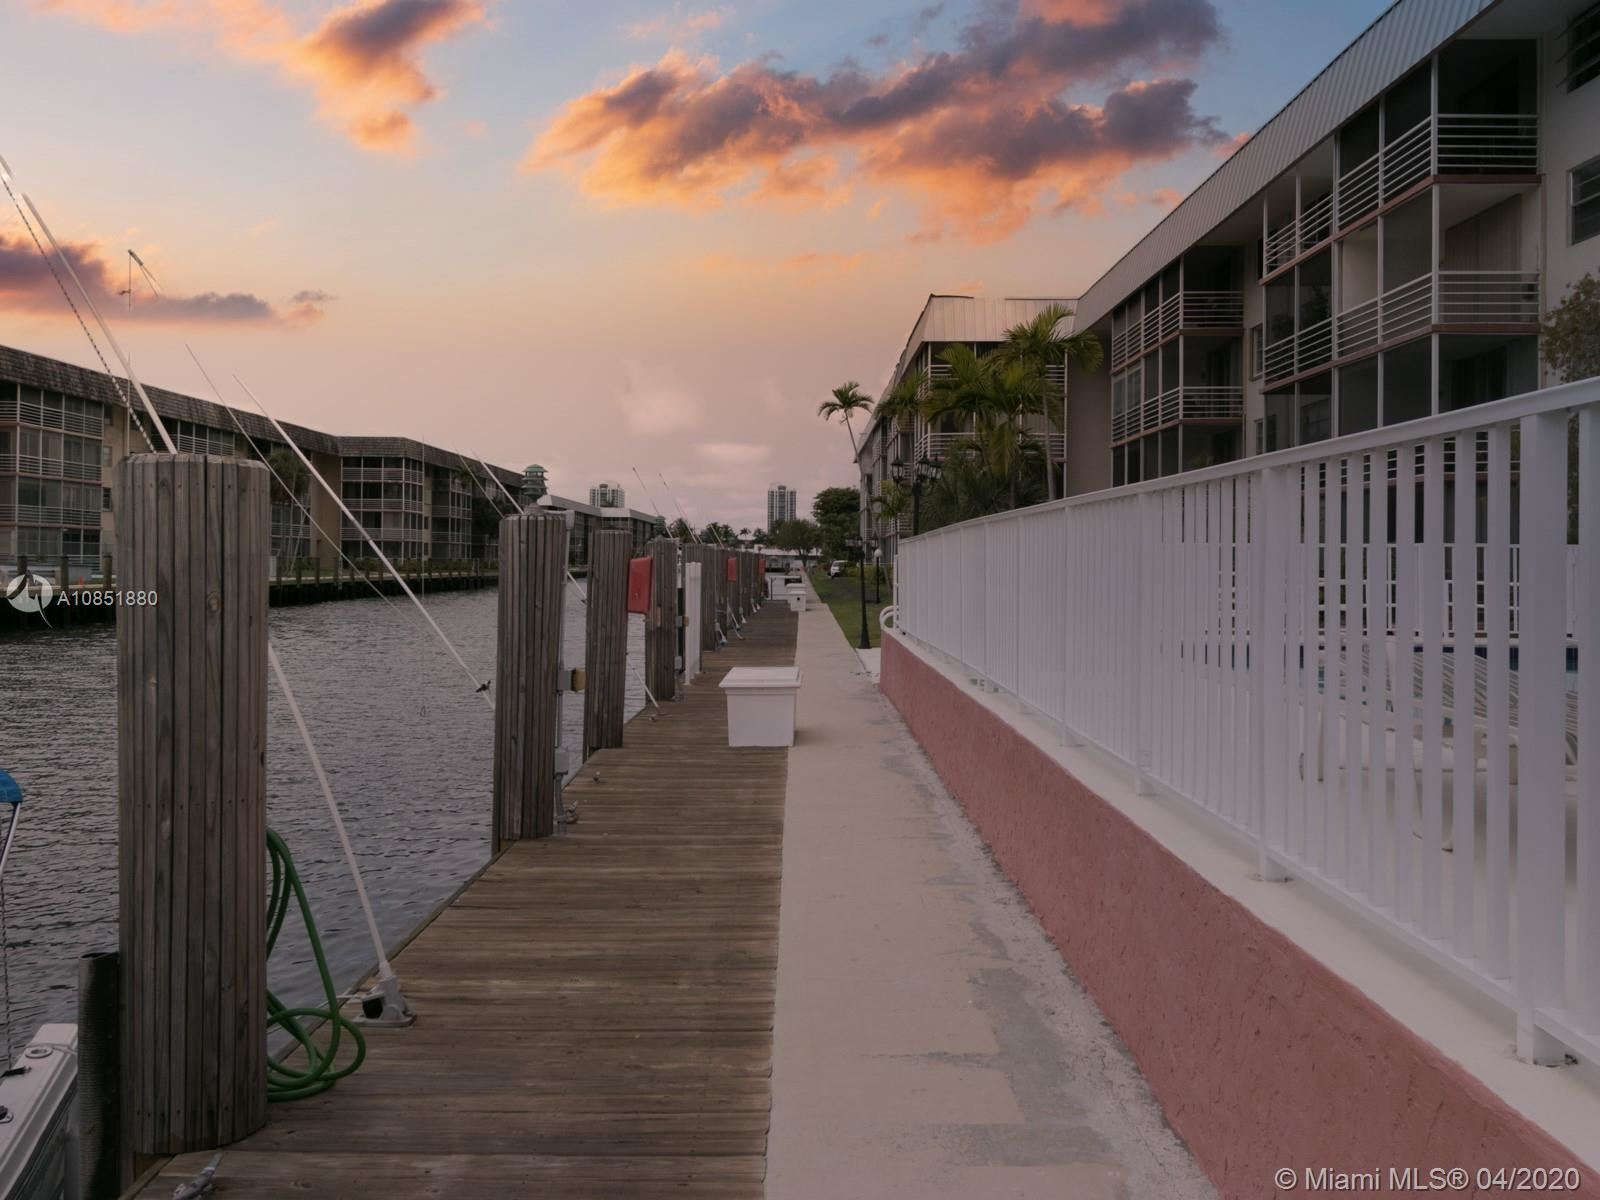 3750 NE 170th St #112, North Miami Beach, FL 33160 - #: A10851880